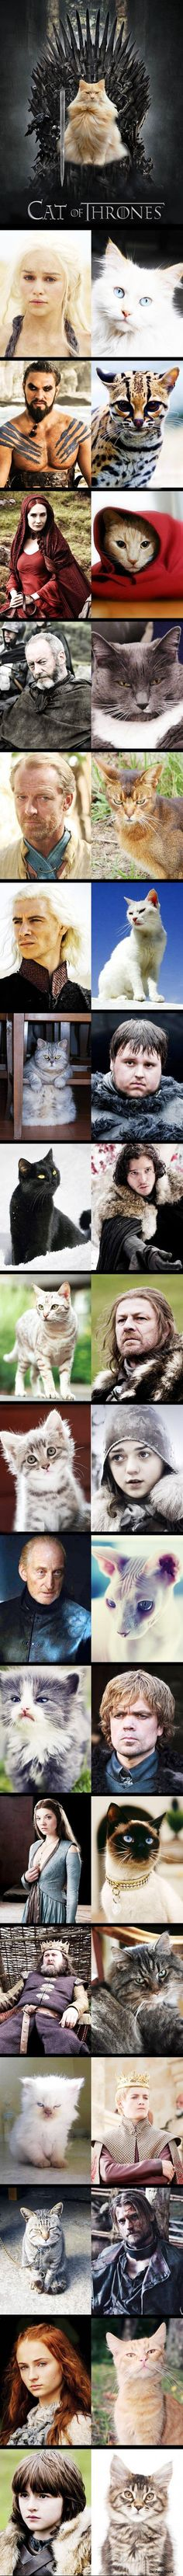 Cat Of Thrones--Game of Thrones characters and their cat doppelgangers